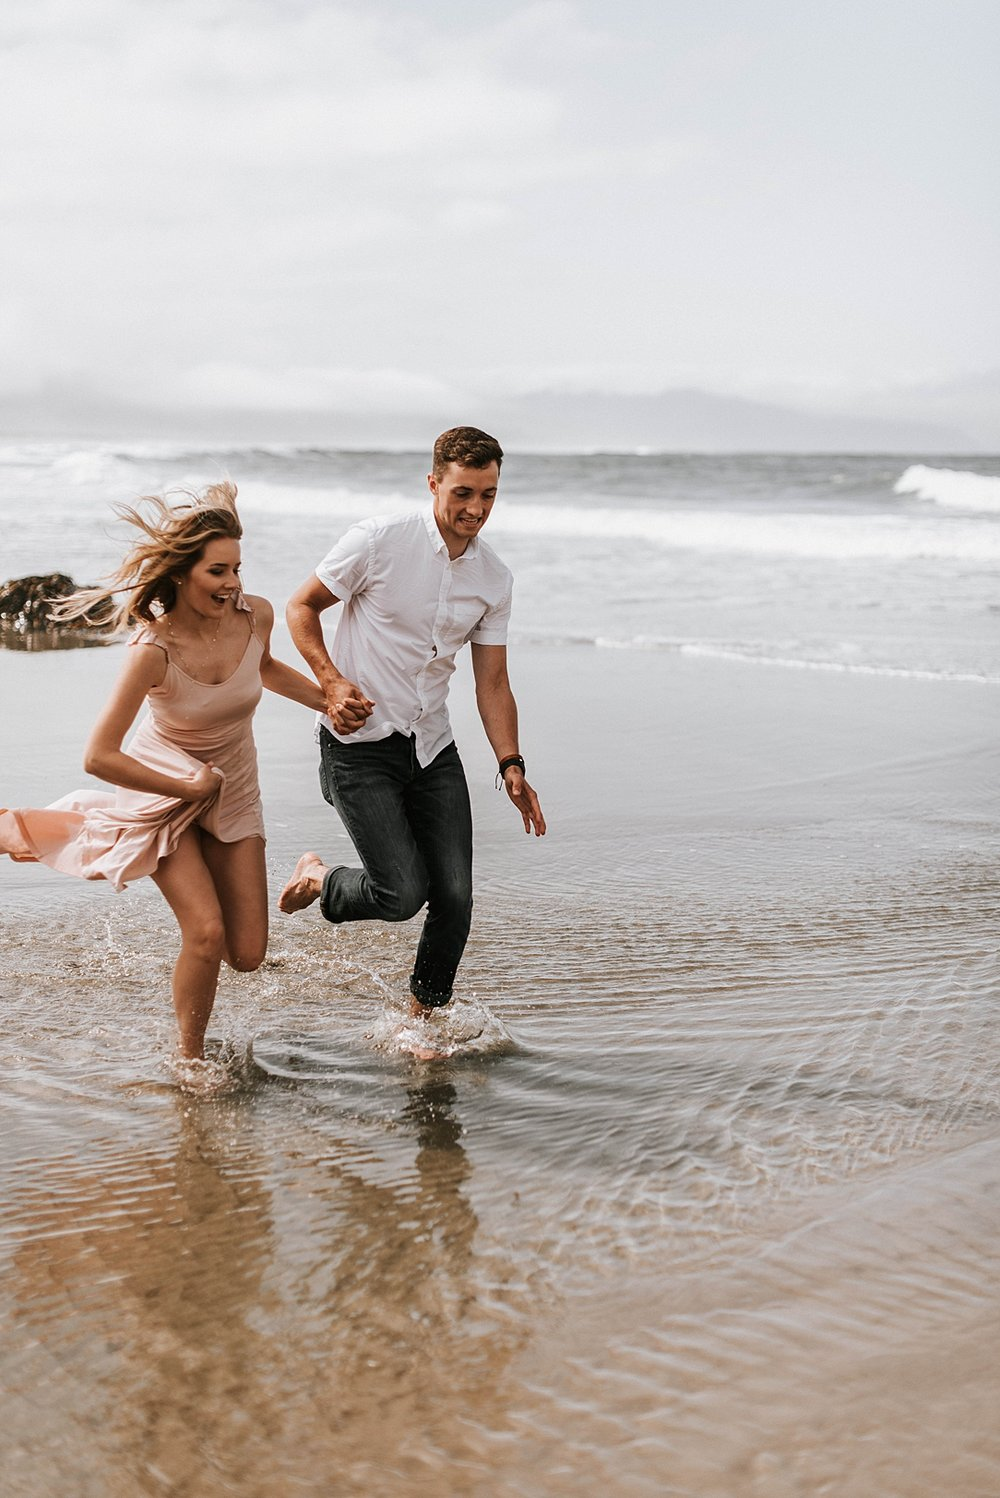 nbp sweet beach couple session_0044.jpg